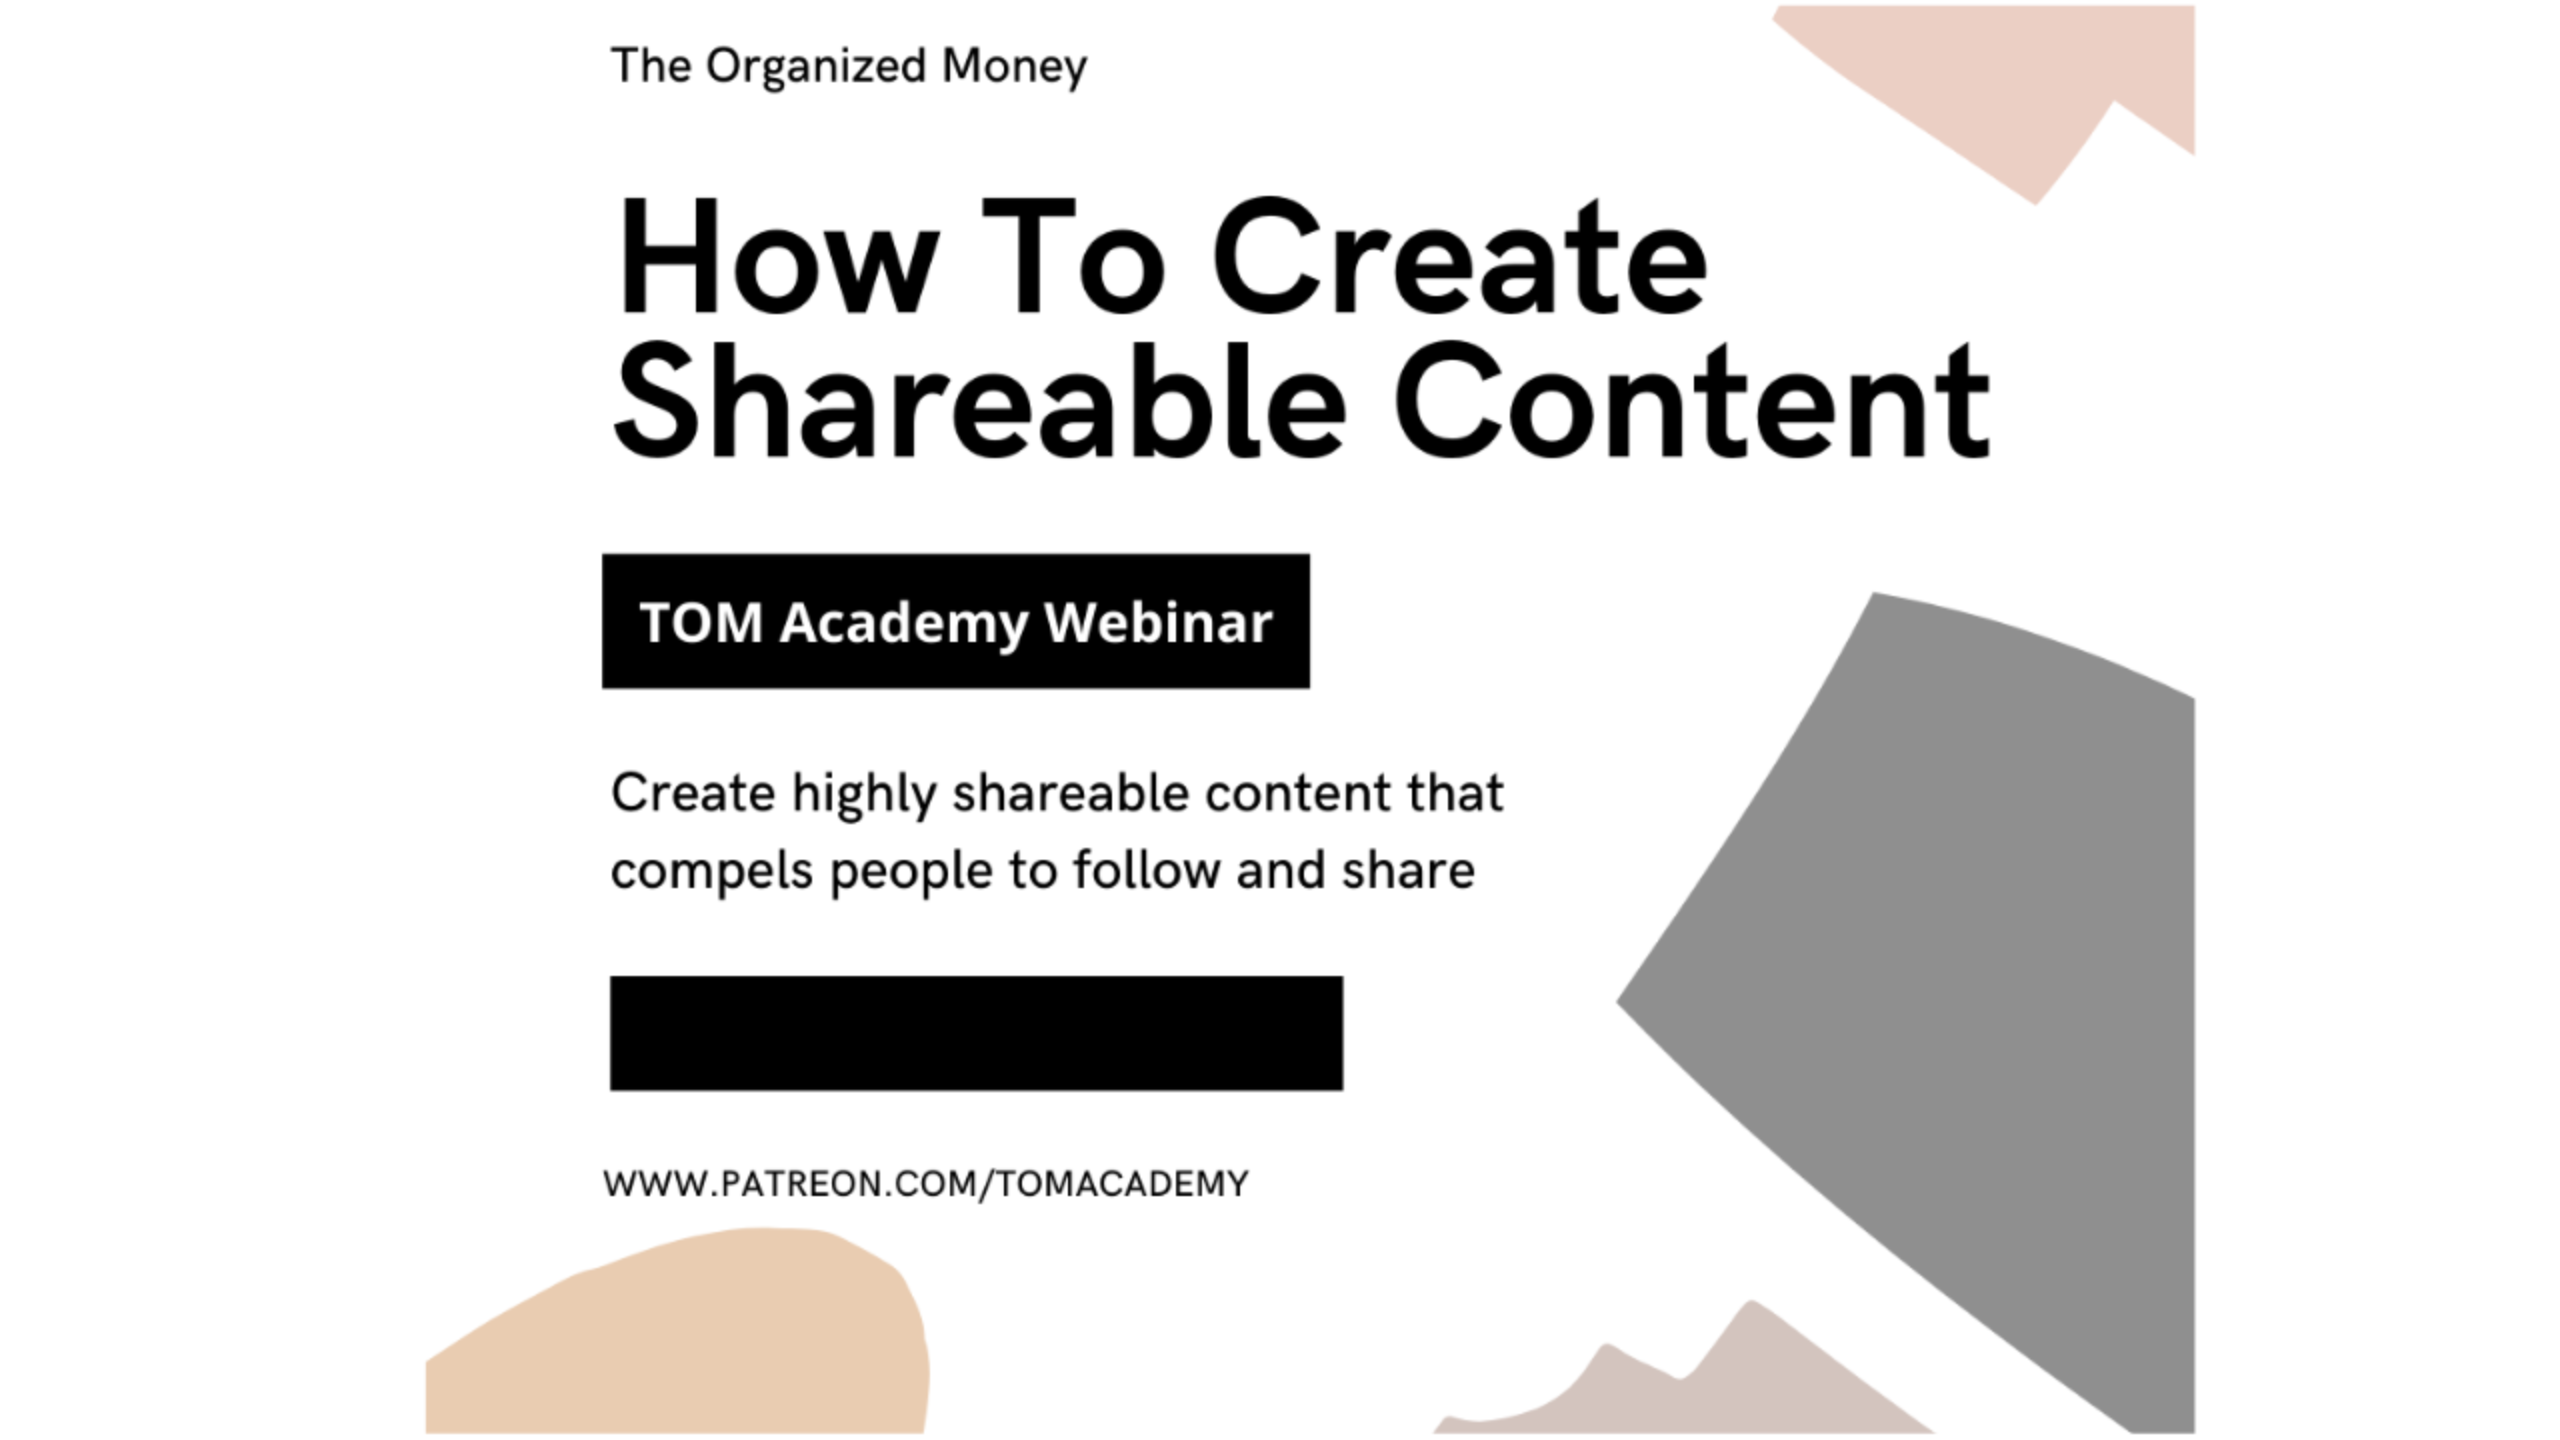 How To Create Shareable Content